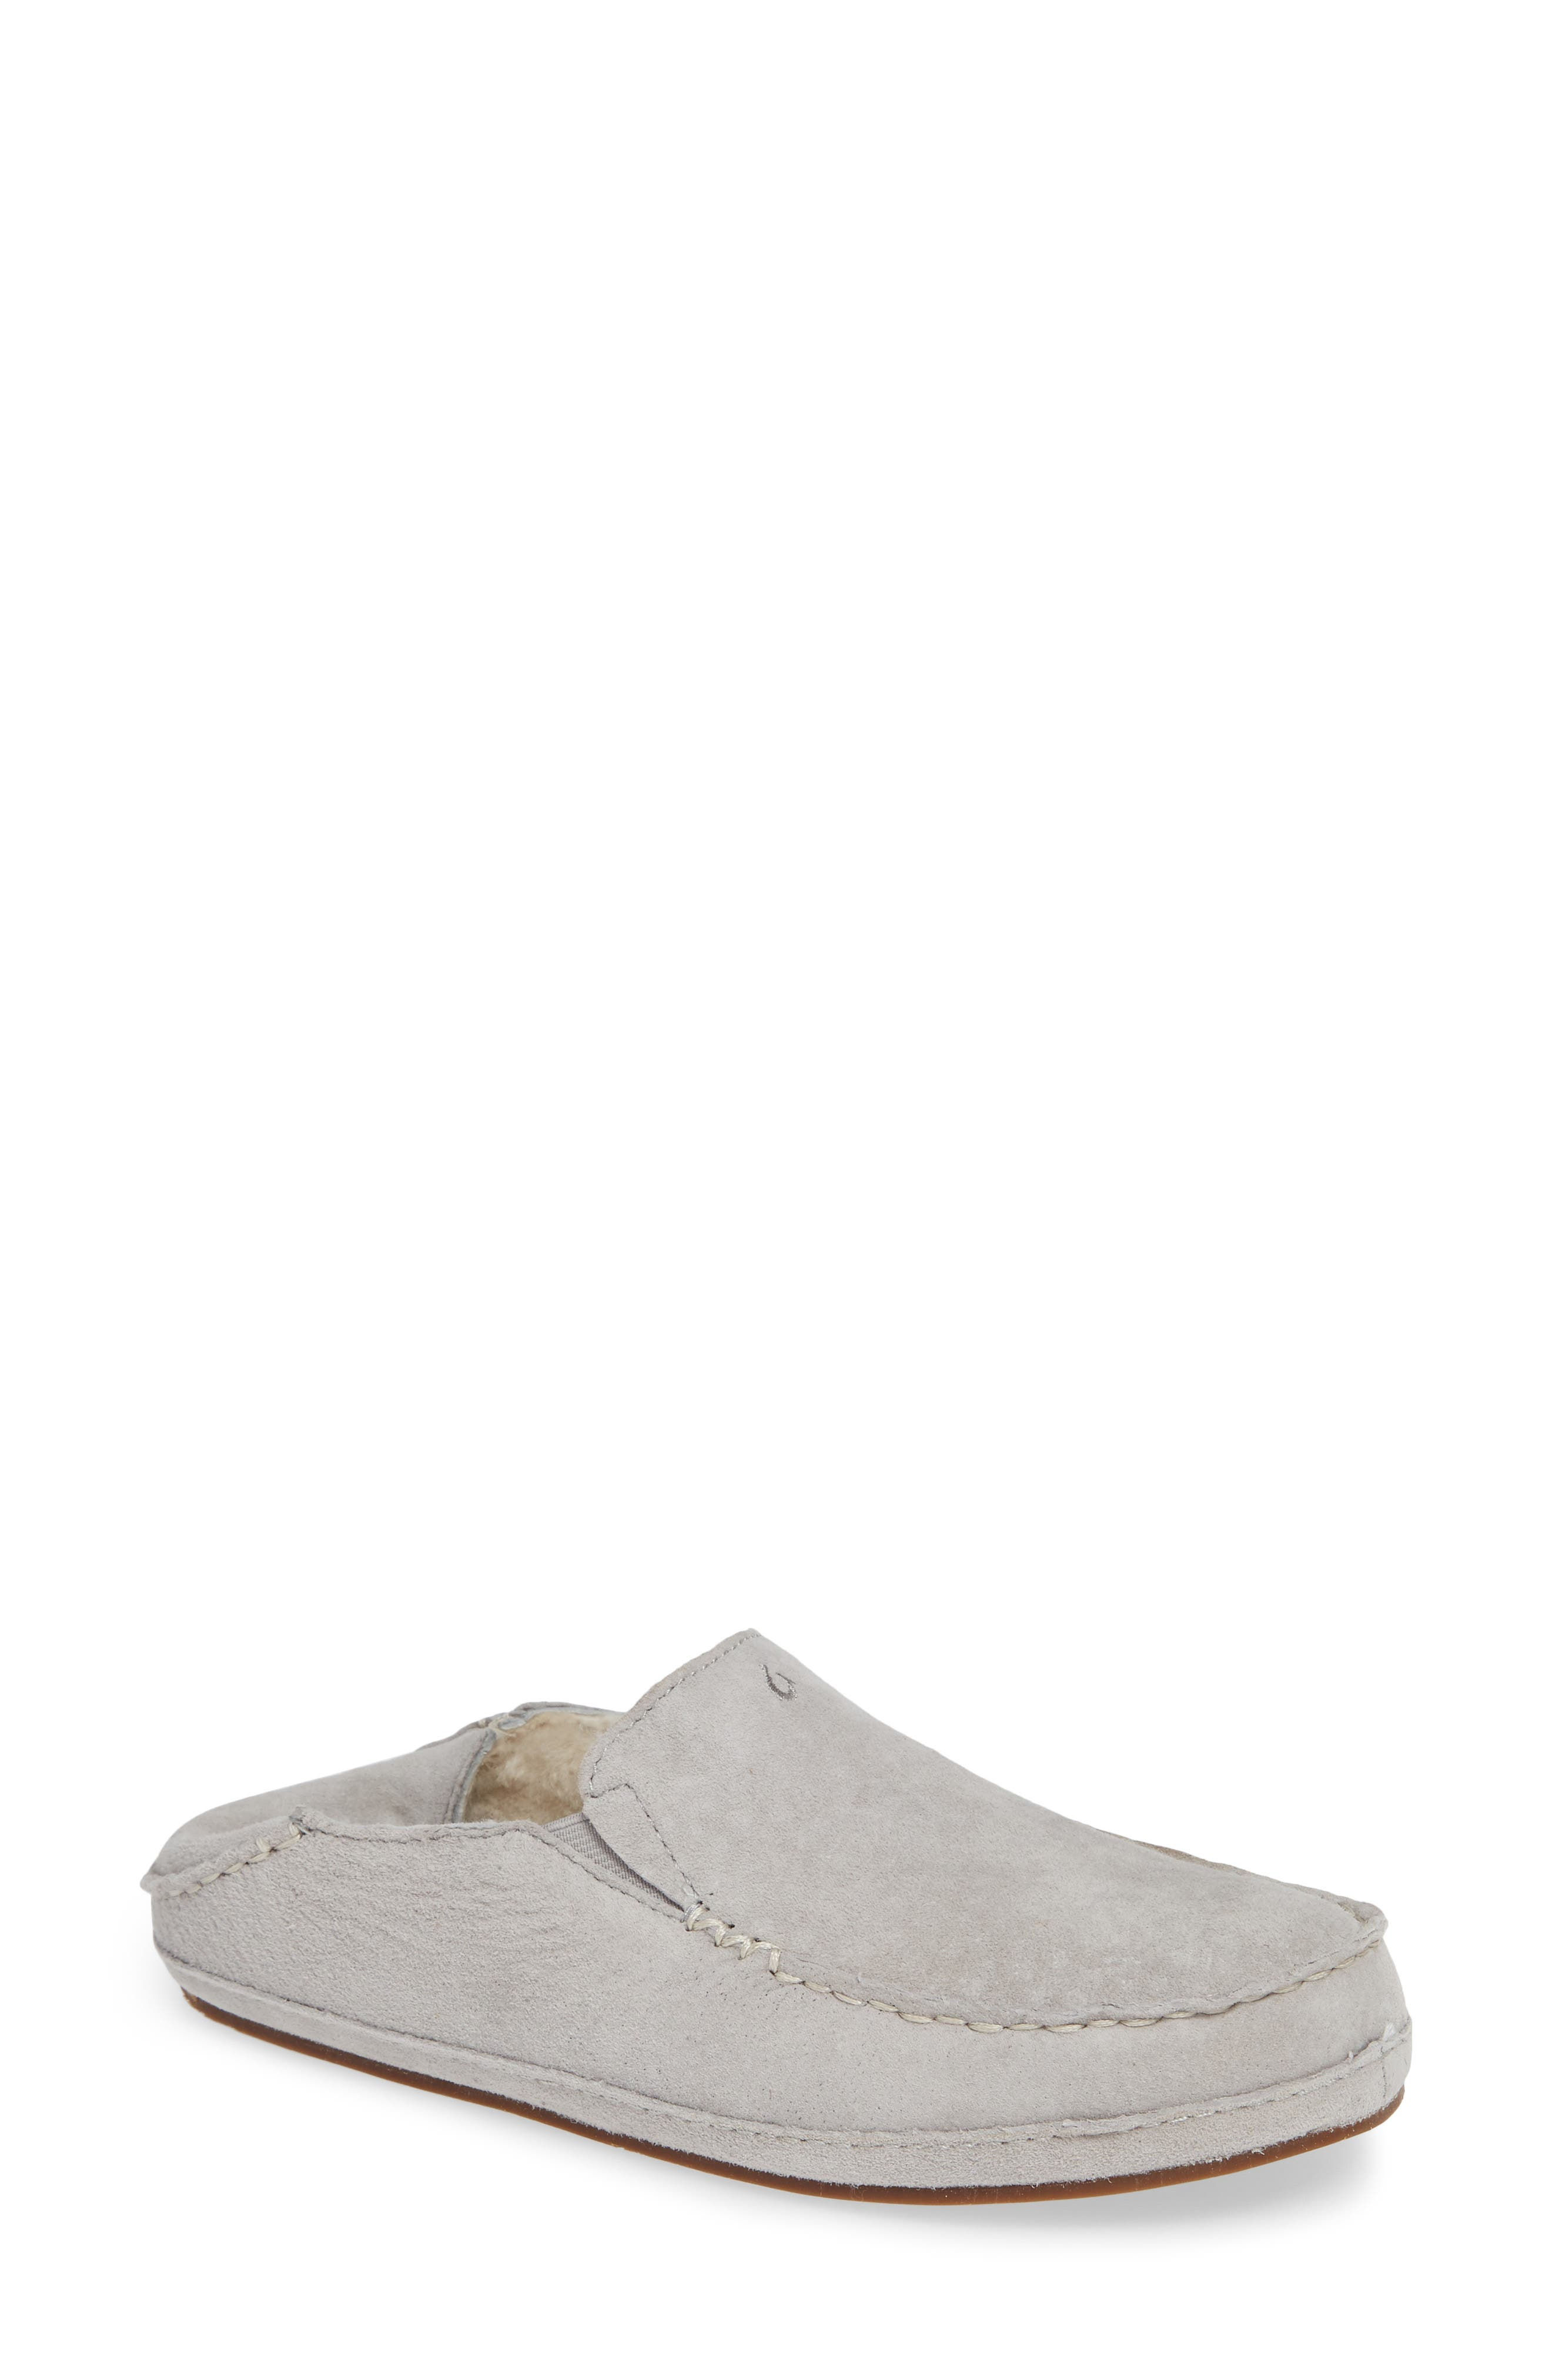 Nohea Nubuck Slipper,                             Main thumbnail 1, color,                             PALE GREY/ PALE GREY LEATHER